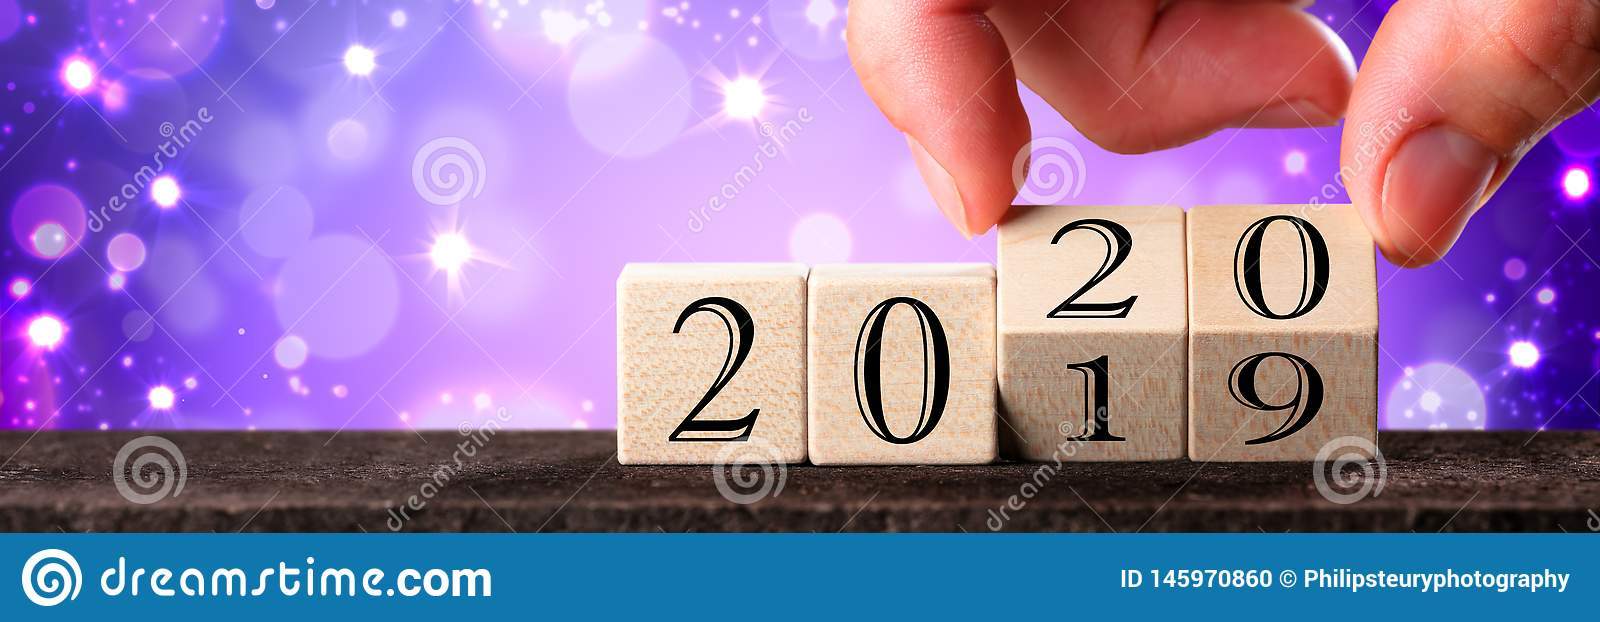 Hand Changing Date From 2019 To 2020